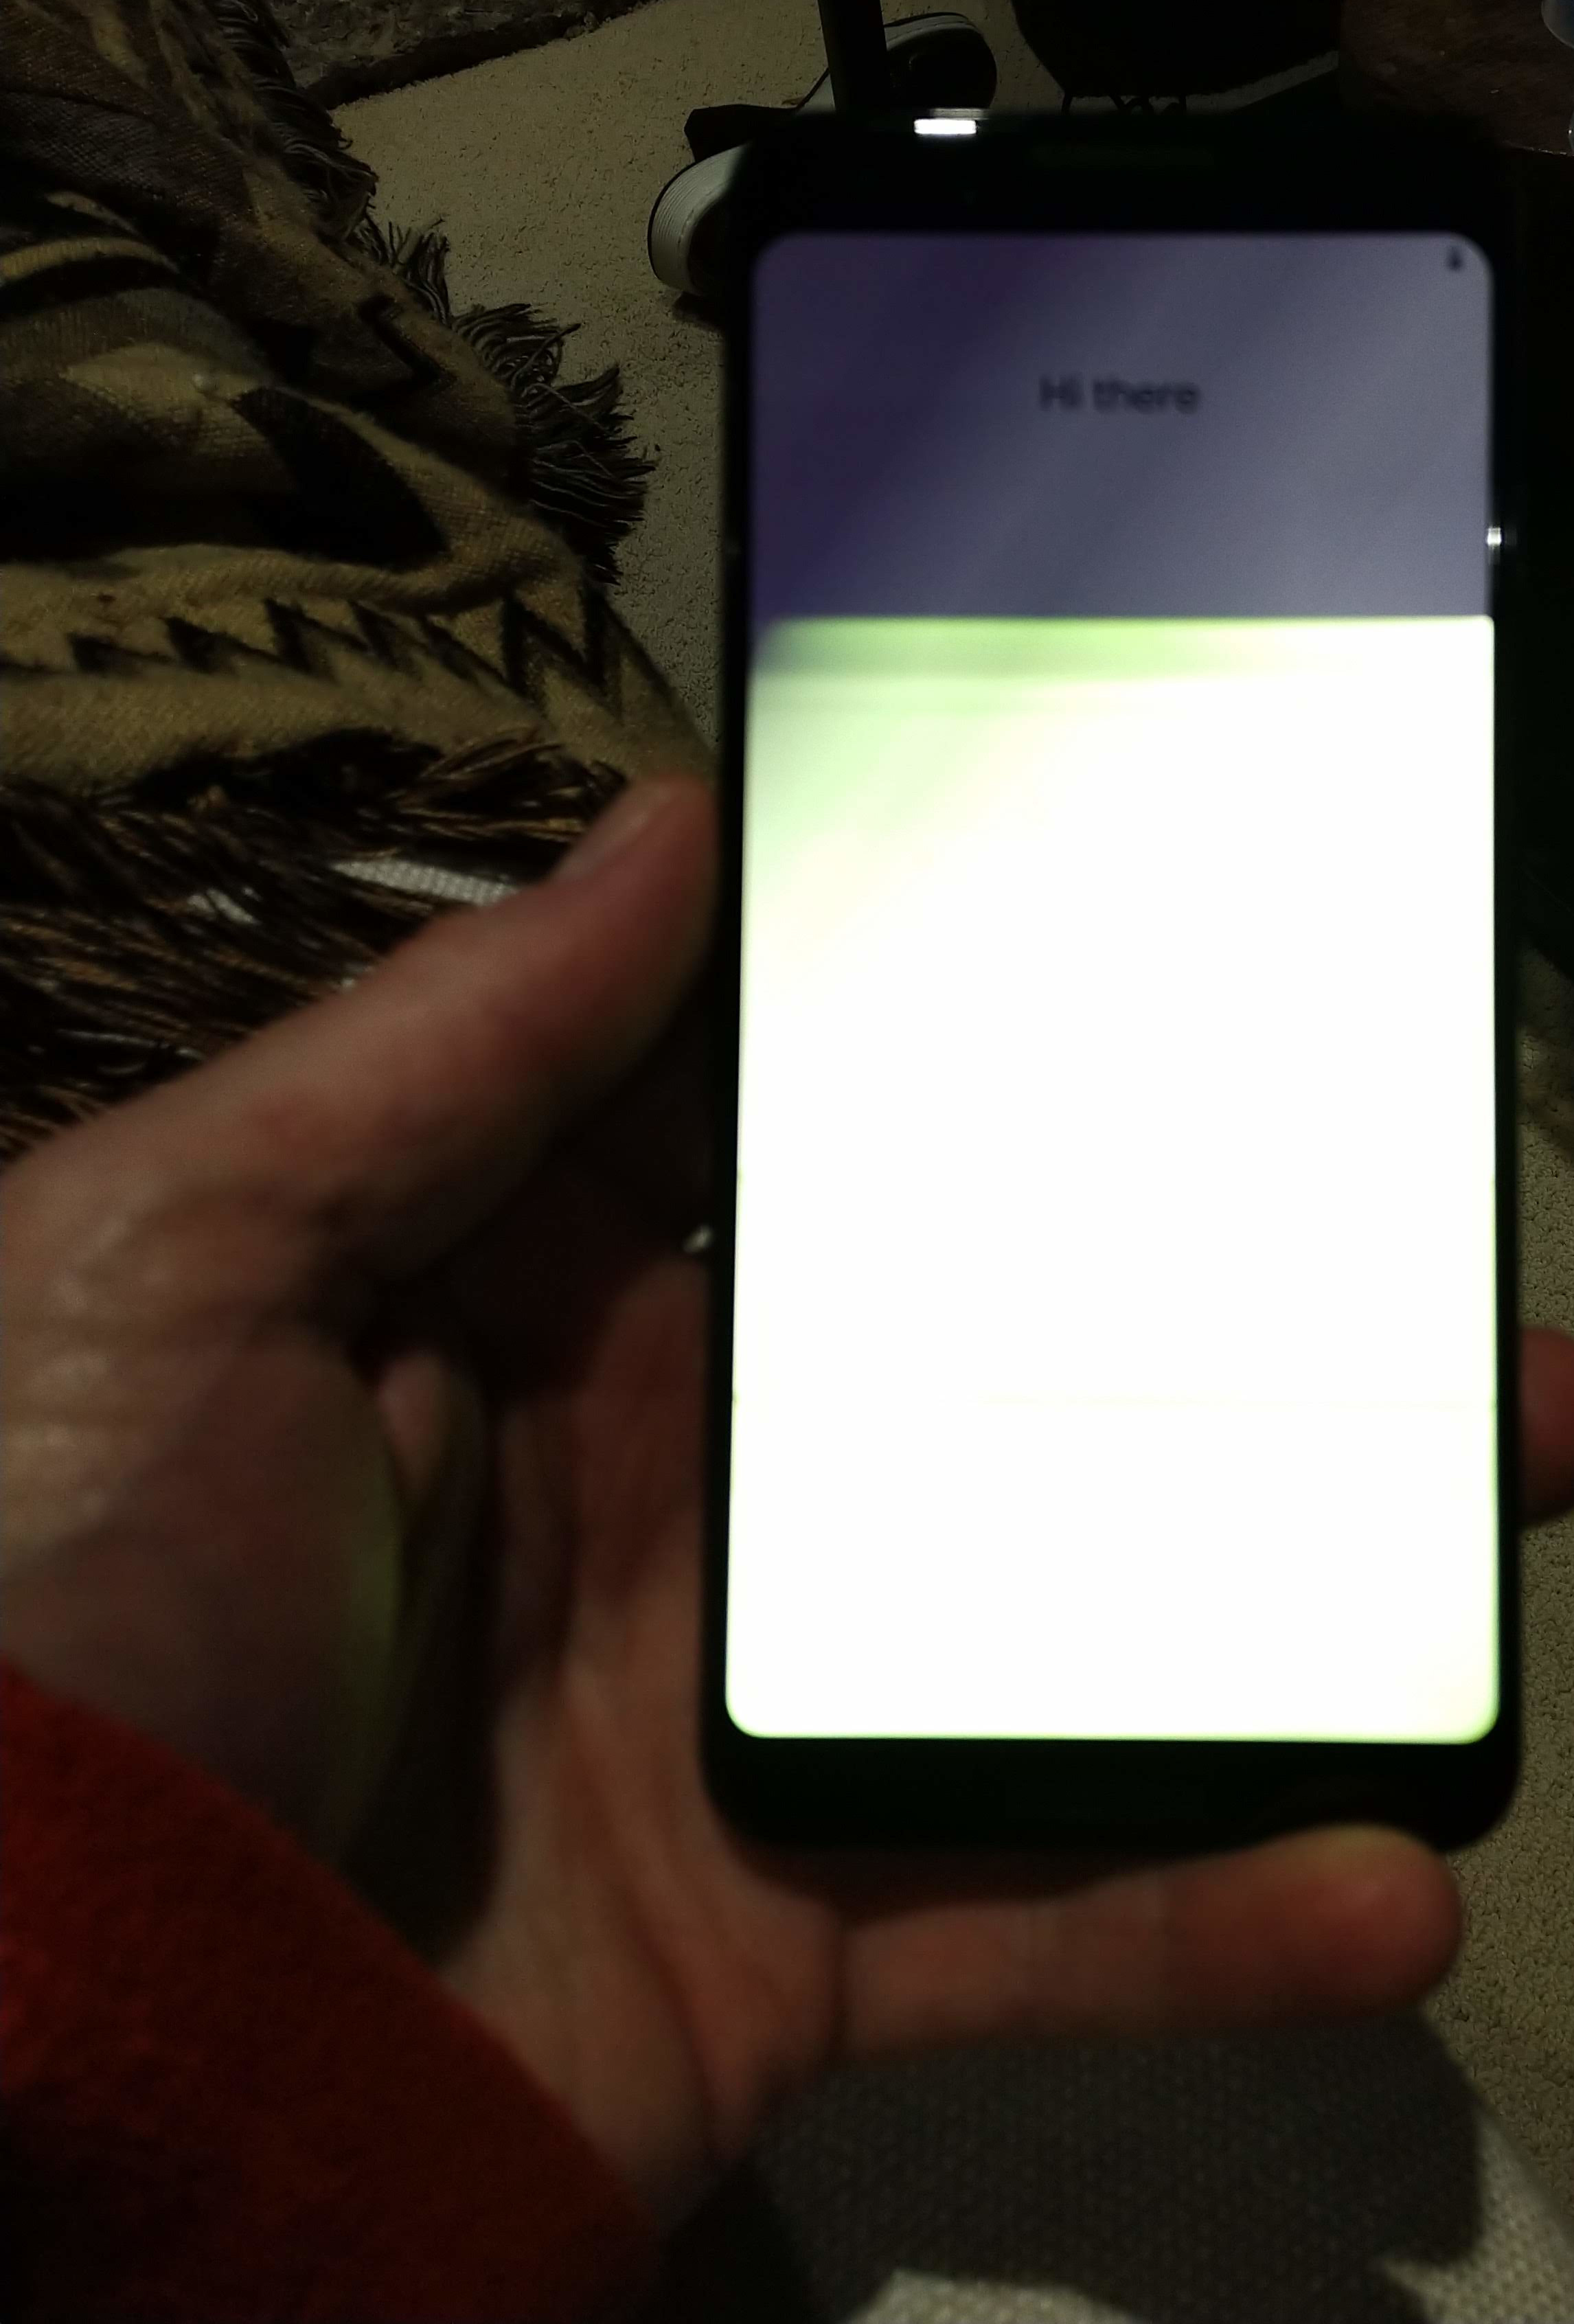 The screen randomly flashed, with a green or white tint.